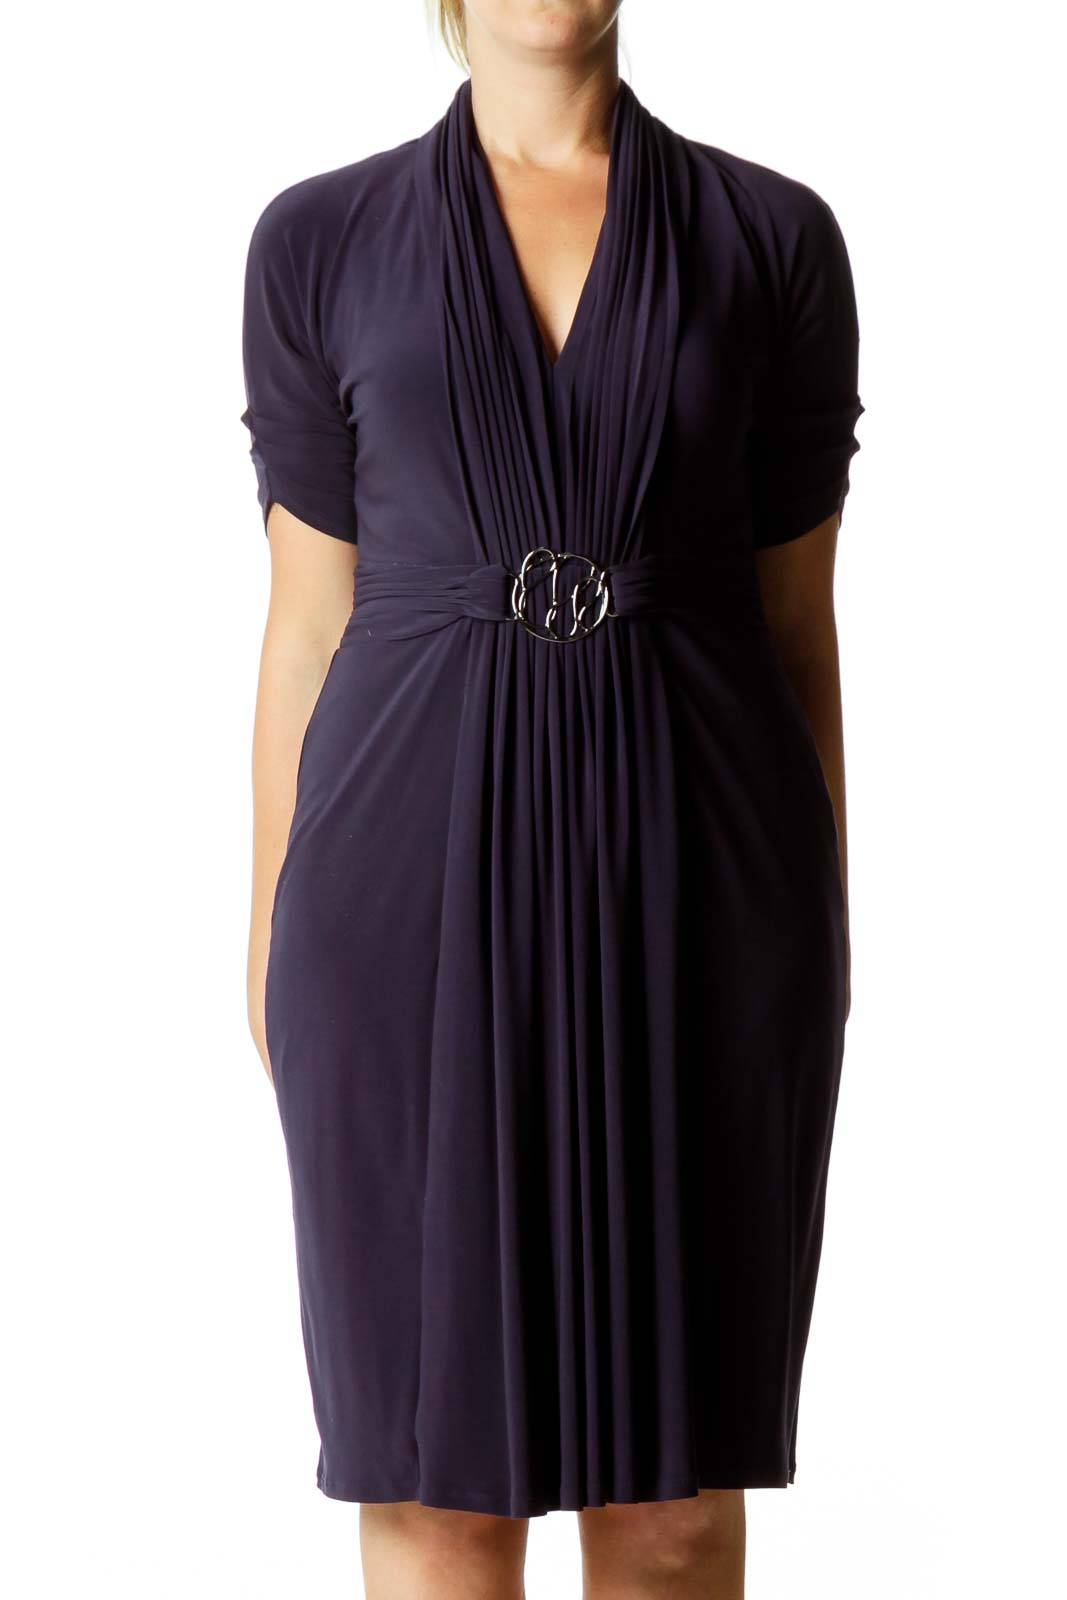 Purple Belted Cocktail Dress